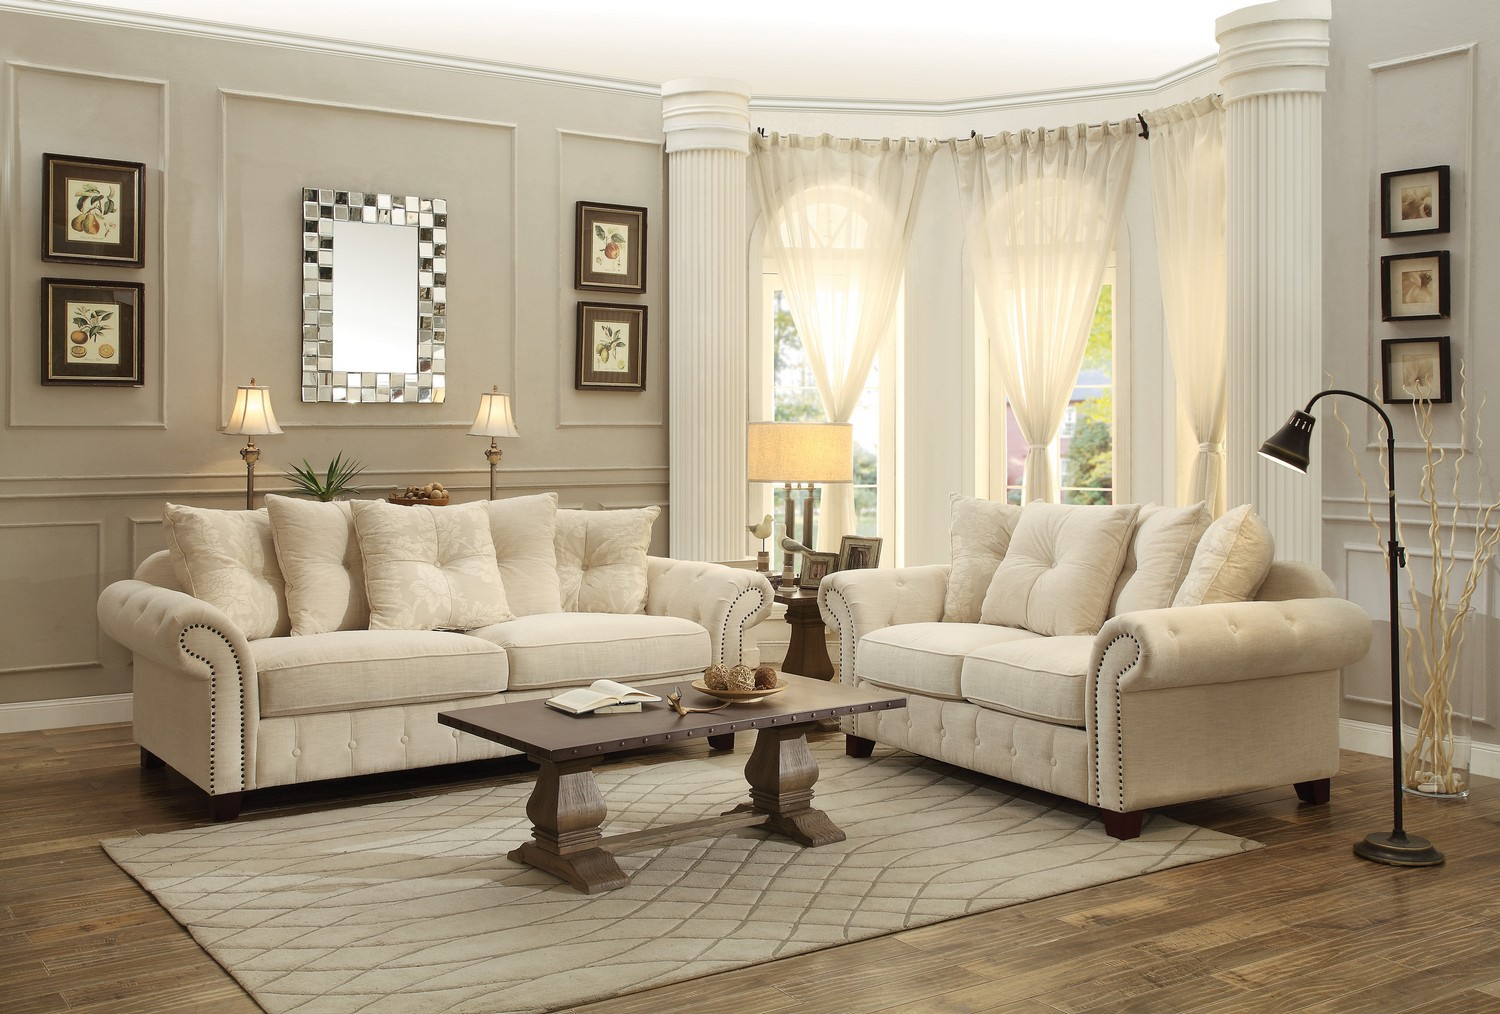 Charmant Homelegance Centralia Sofa Set   Polyester Blend   Cream